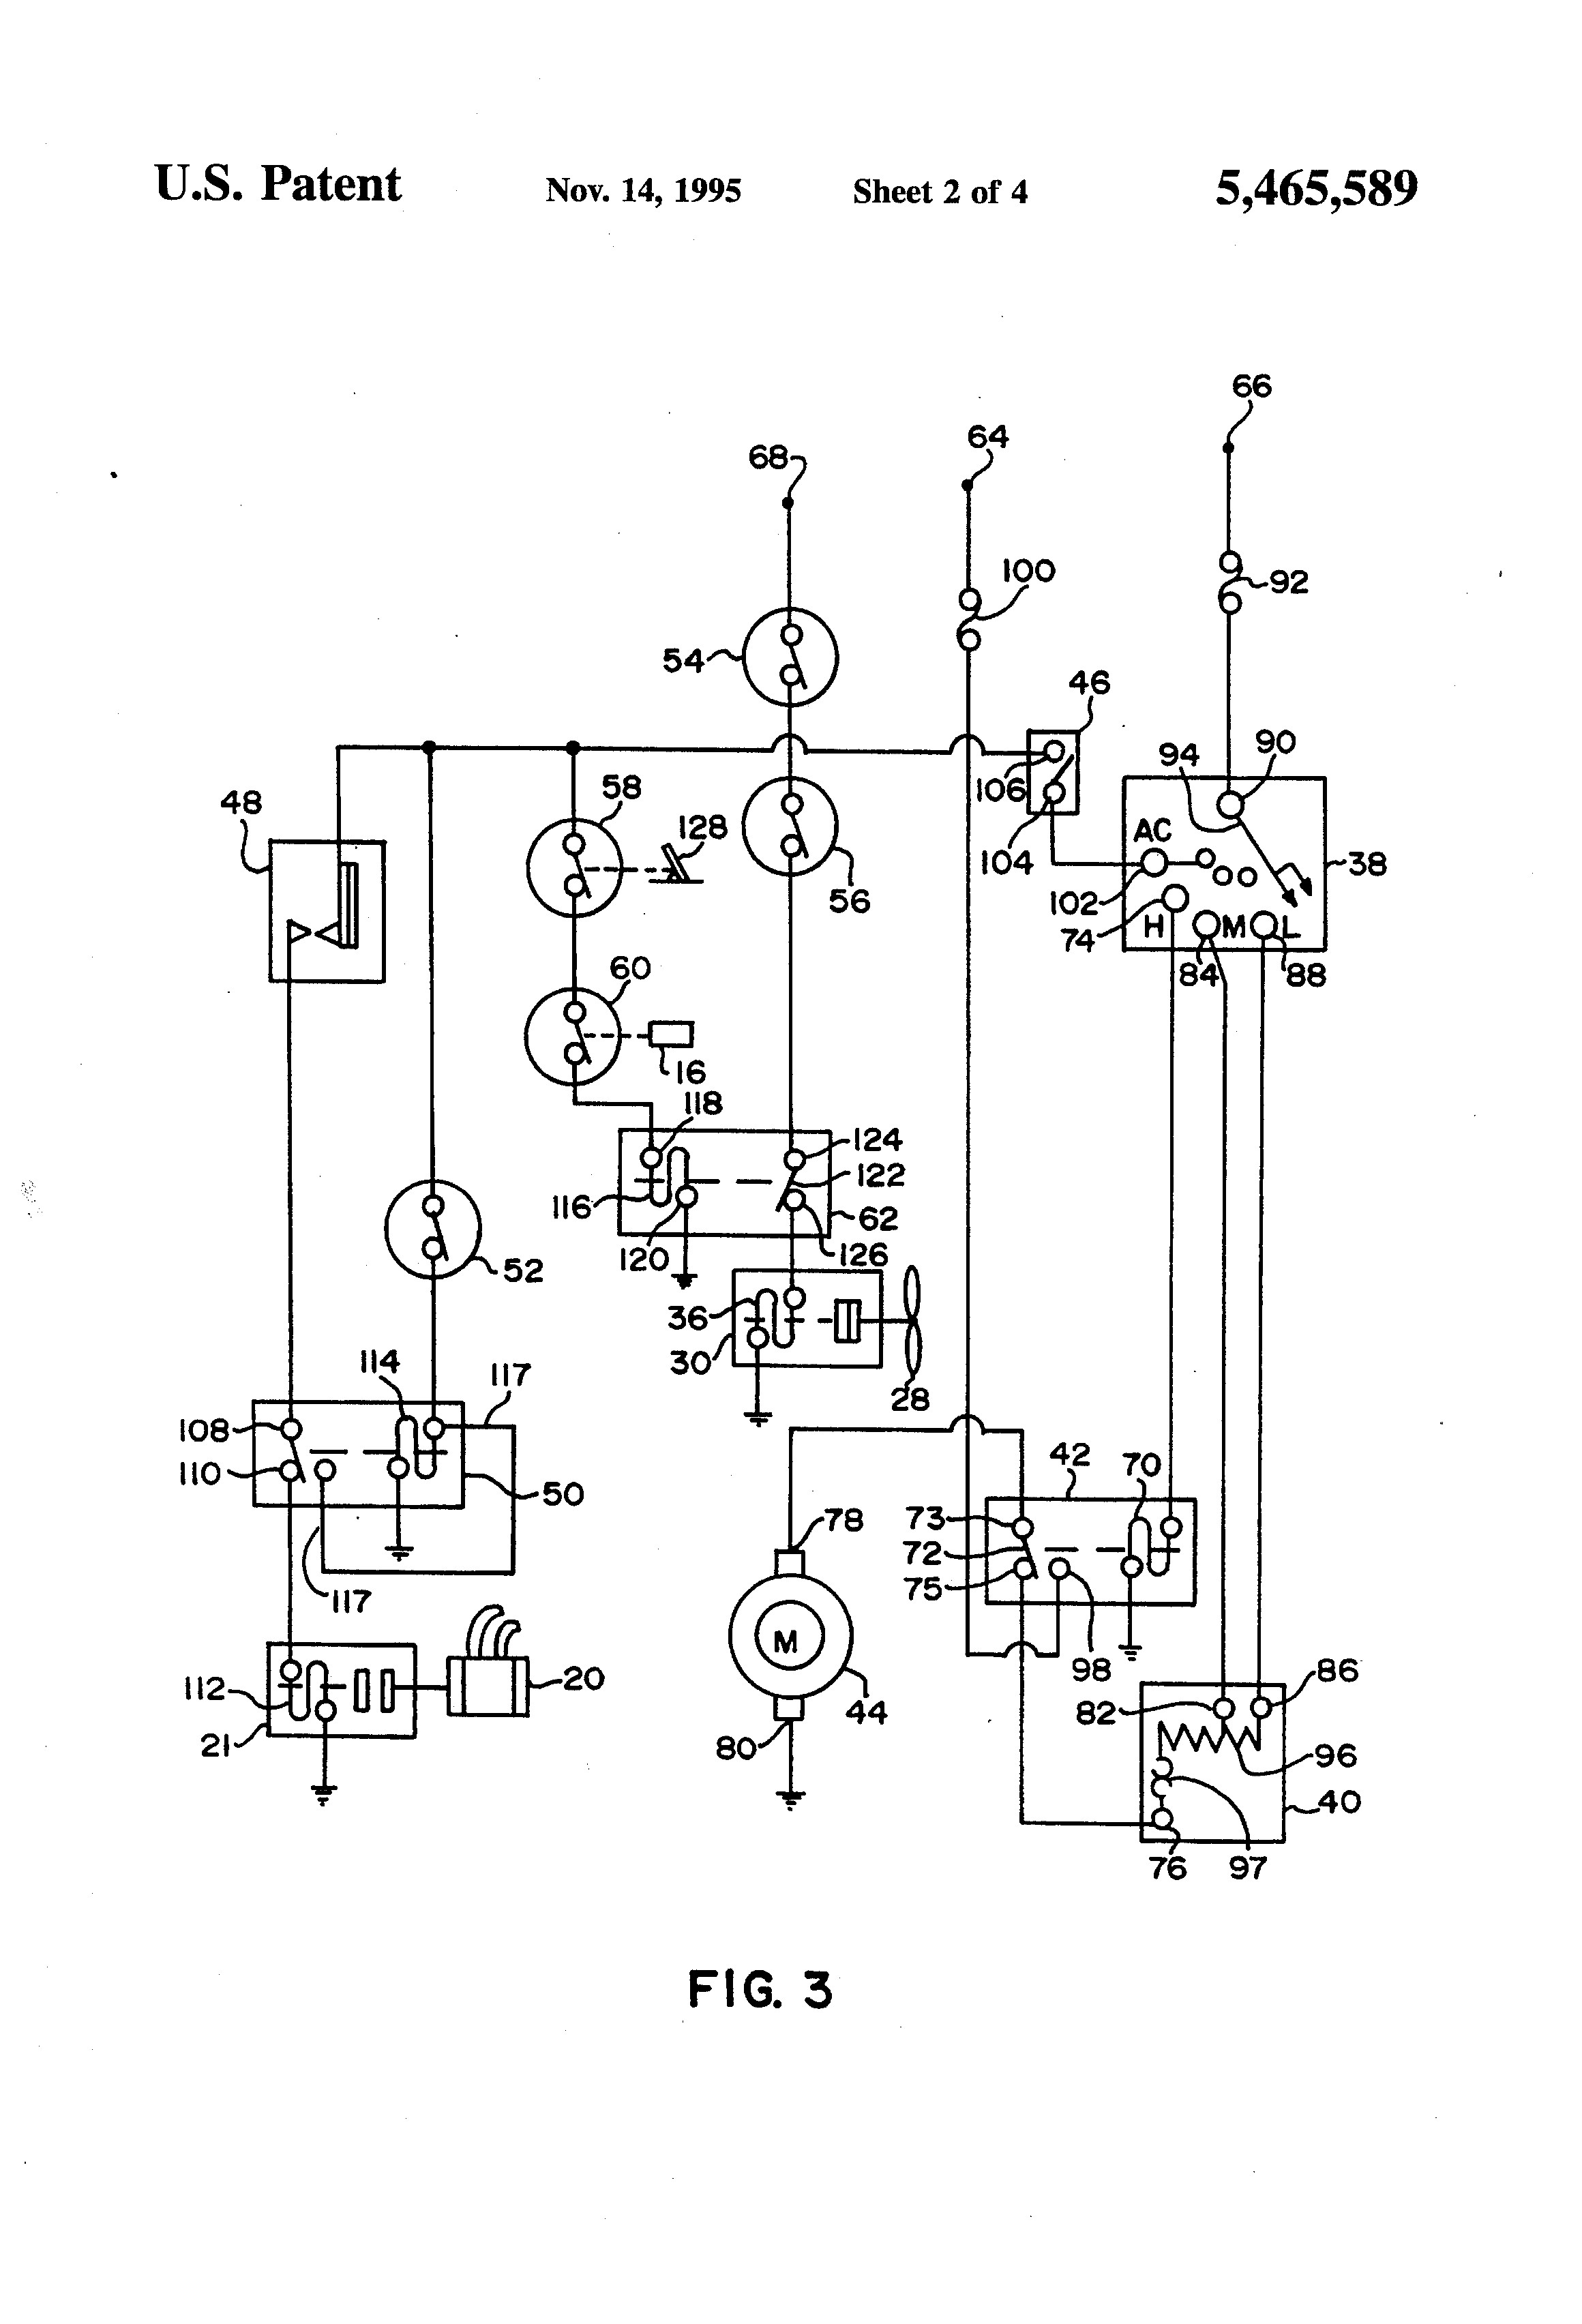 Navistar Wiring Diagram Headlight on navistar 7.3 diagram, sterling trucks electrical diagrams, model engine glow plug diagrams, ezgo golf cart parts diagrams, international navistar parts diagrams, 1996 ezgo gas electrical diagrams, international trucks specs diagrams, international truck electrical diagrams, sterling air switch diagrams, international dt 466 engines diagrams, scout ii diagrams, 7.3 ford diesel diagrams,